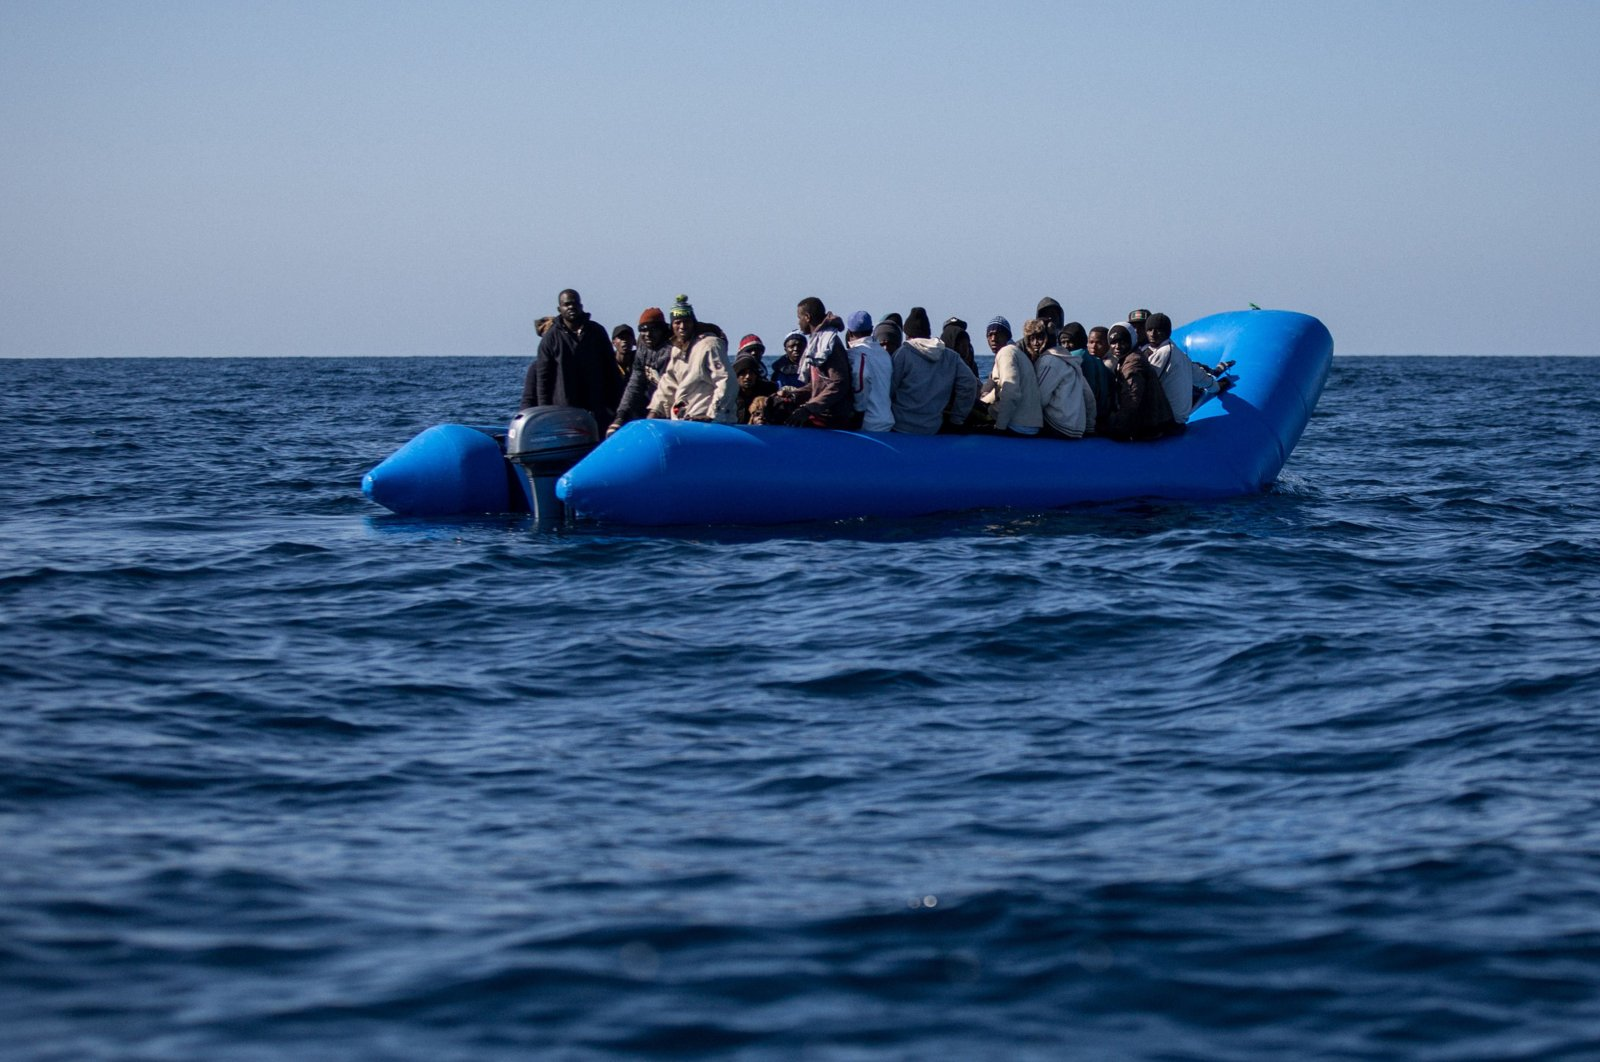 An inflatable boat with 47 migrants on board is pictured while being rescued by the Dutch-flagged Sea Watch 3 off Libya's coasts, Jan. 19, 2019. (AFP Photo)